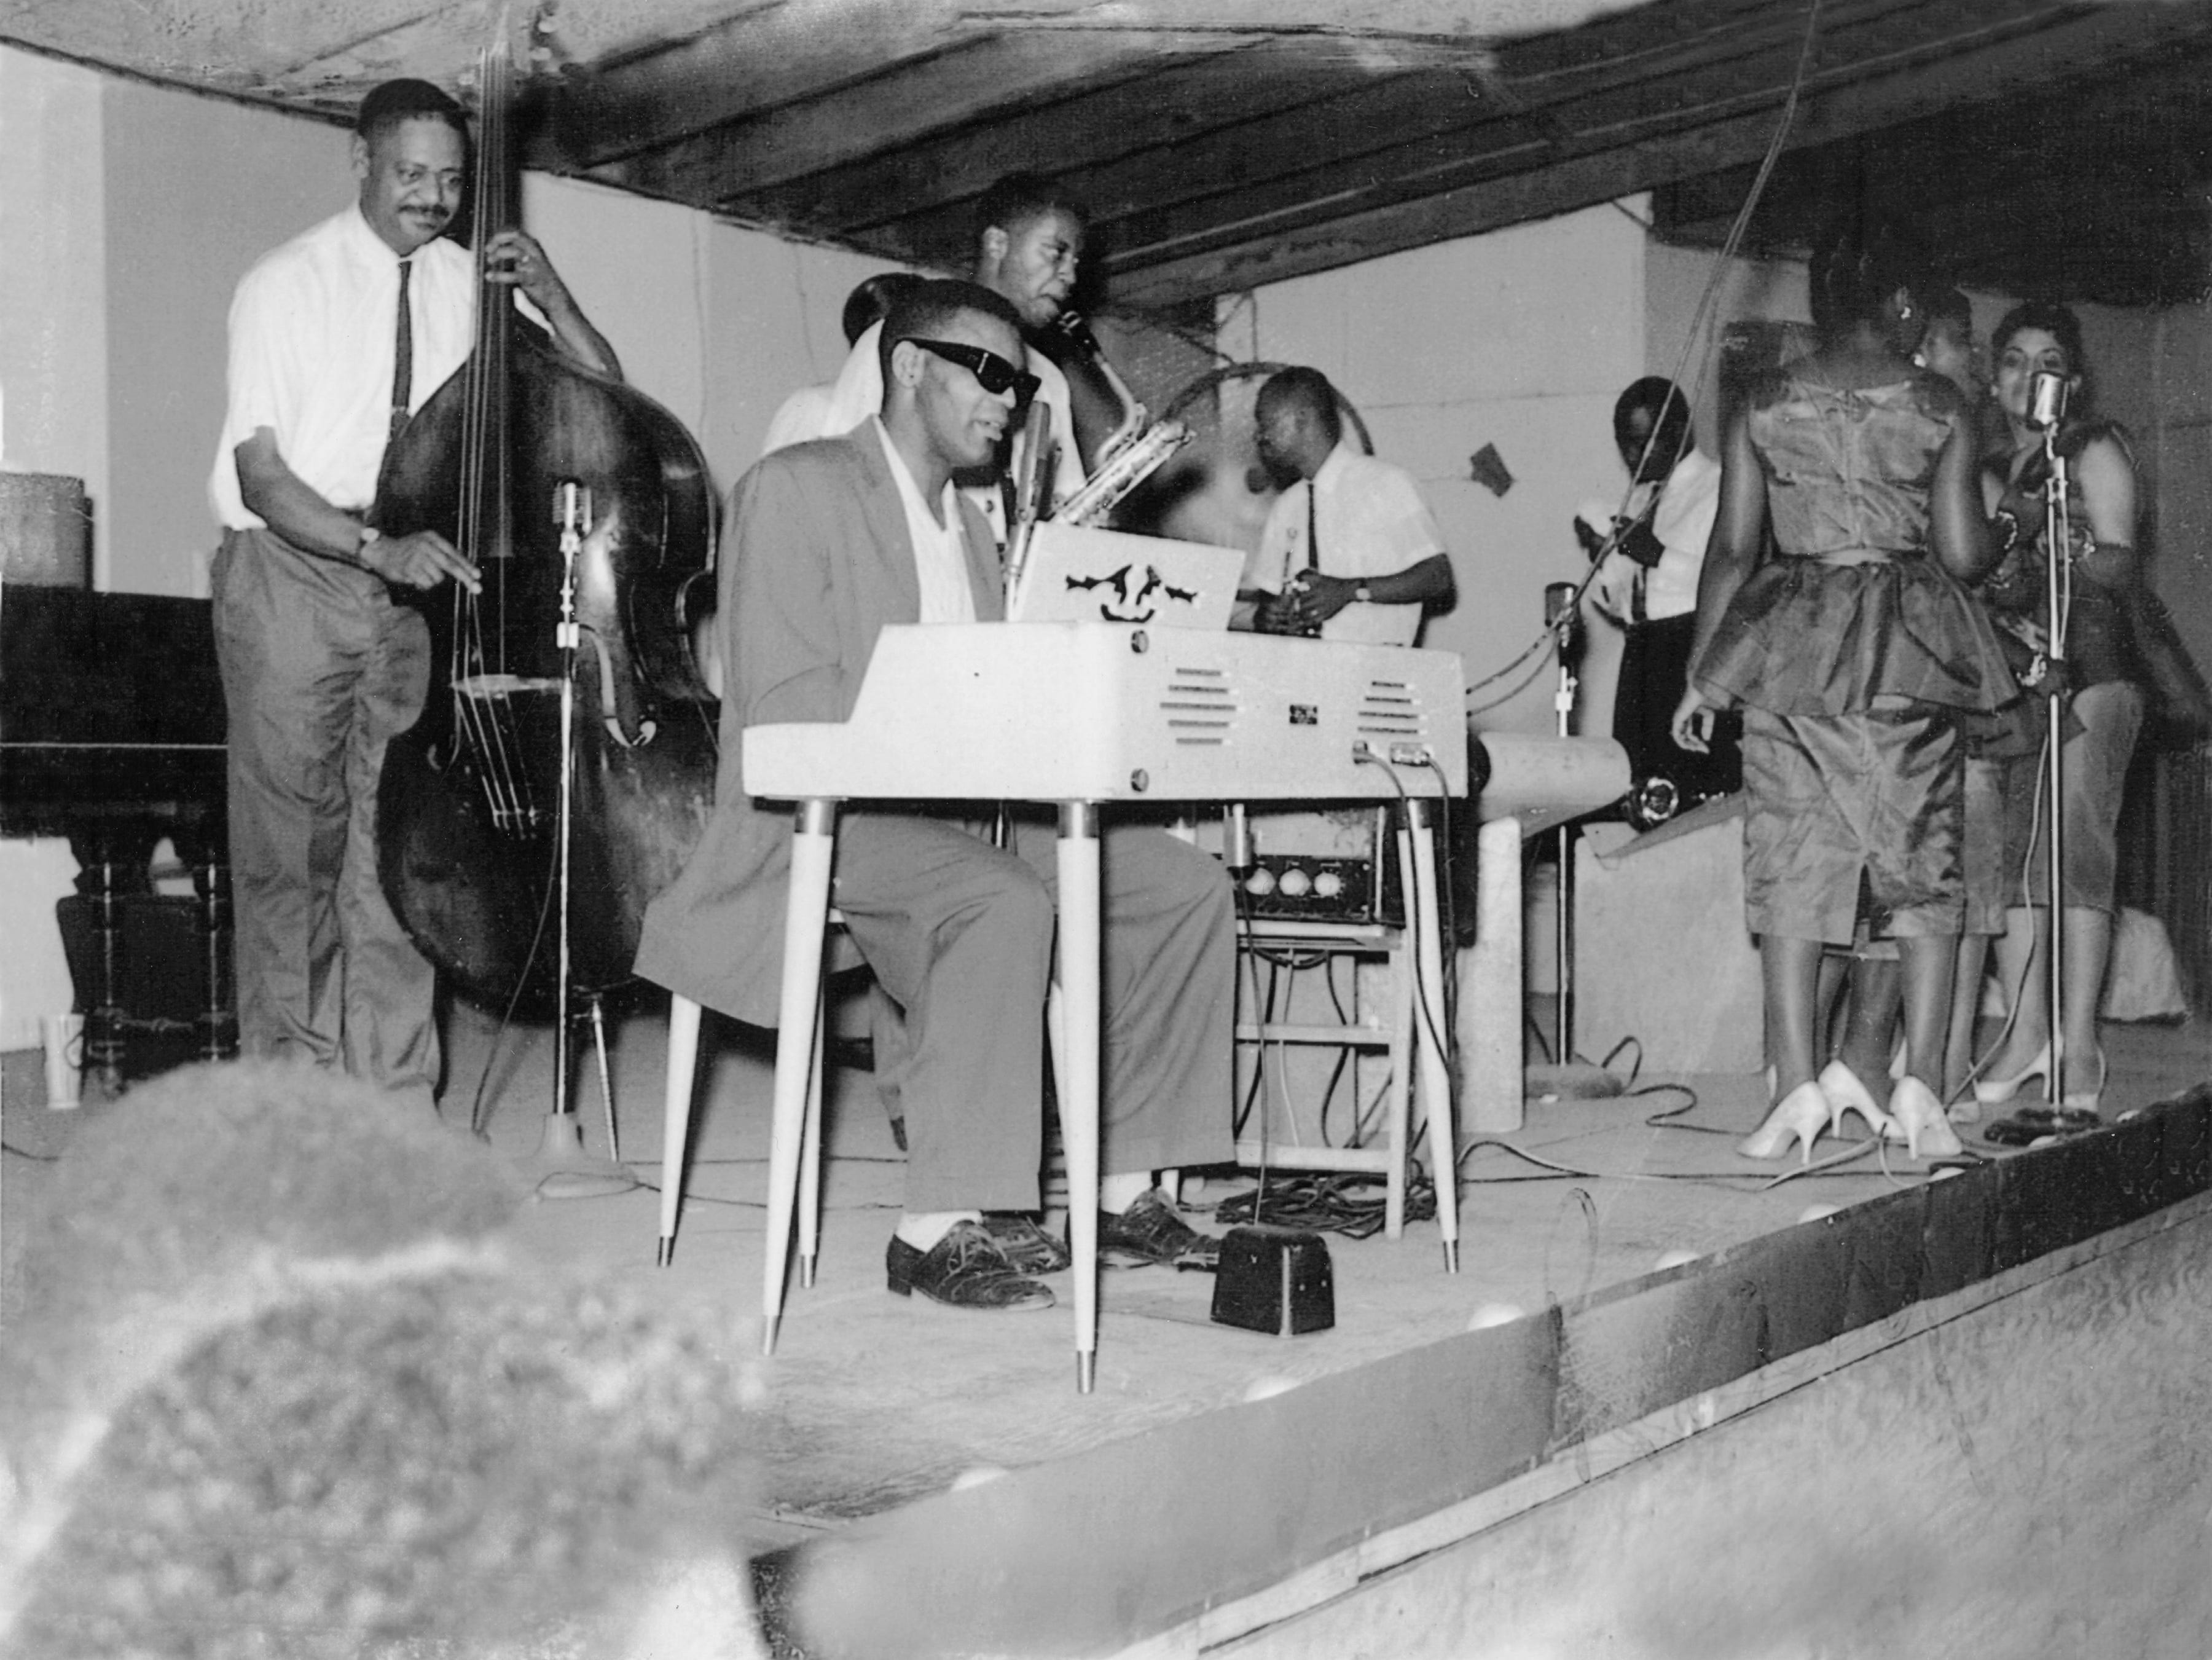 """Ray Charles and band at Maceo's in Nashville, c. 1959. L to R: Edgar Willis, Ray Charles, David """"Fathead"""" Newman, Hank Crawford (looking back), Marcus Belgrave, the Raeletts (Margie Hendrix, Pat Lyles, Gwendolyn Berry, Darlene McCrae)."""